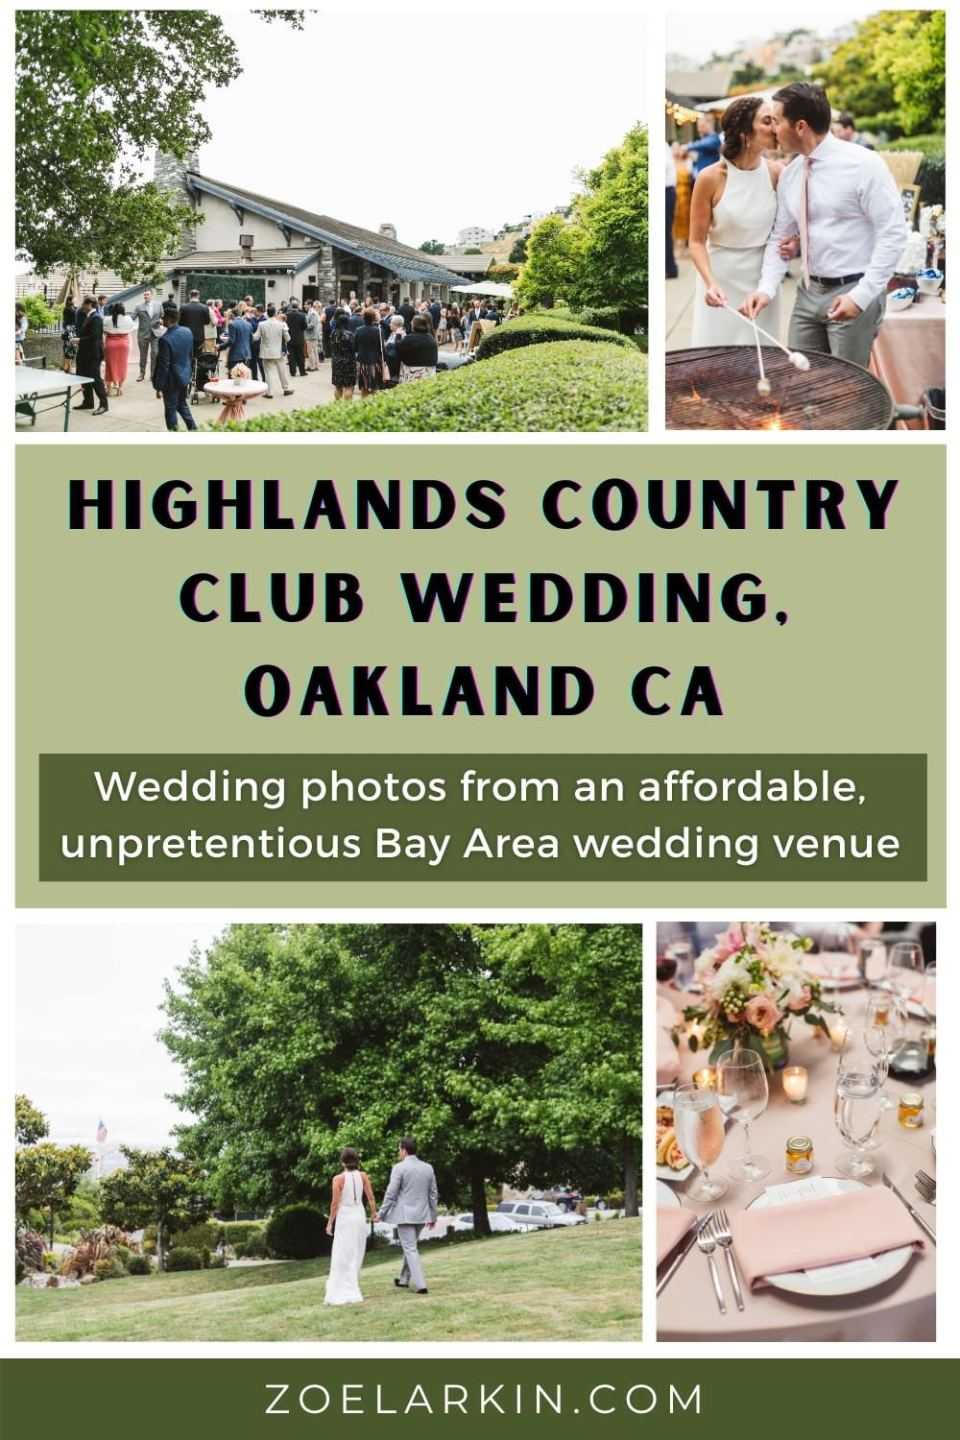 Looking for an affordable Bay Area CA wedding venue? The Highlands Country Club nestled in the Oakland Hills, East Bay & overlooking the Bay has it all! Set among stunning grounds and rolling hills, with a cozy fireside room, large windows & ample outdoor space (capacity of 100!) + a low price tag, this Highlands Country Club wedding couple will show YOU how to party in style amid beautiful, natural + iconic Bay Area surroundings! #bayareawedding #bayareaweddingvenue #weddings | zoelarkin.com